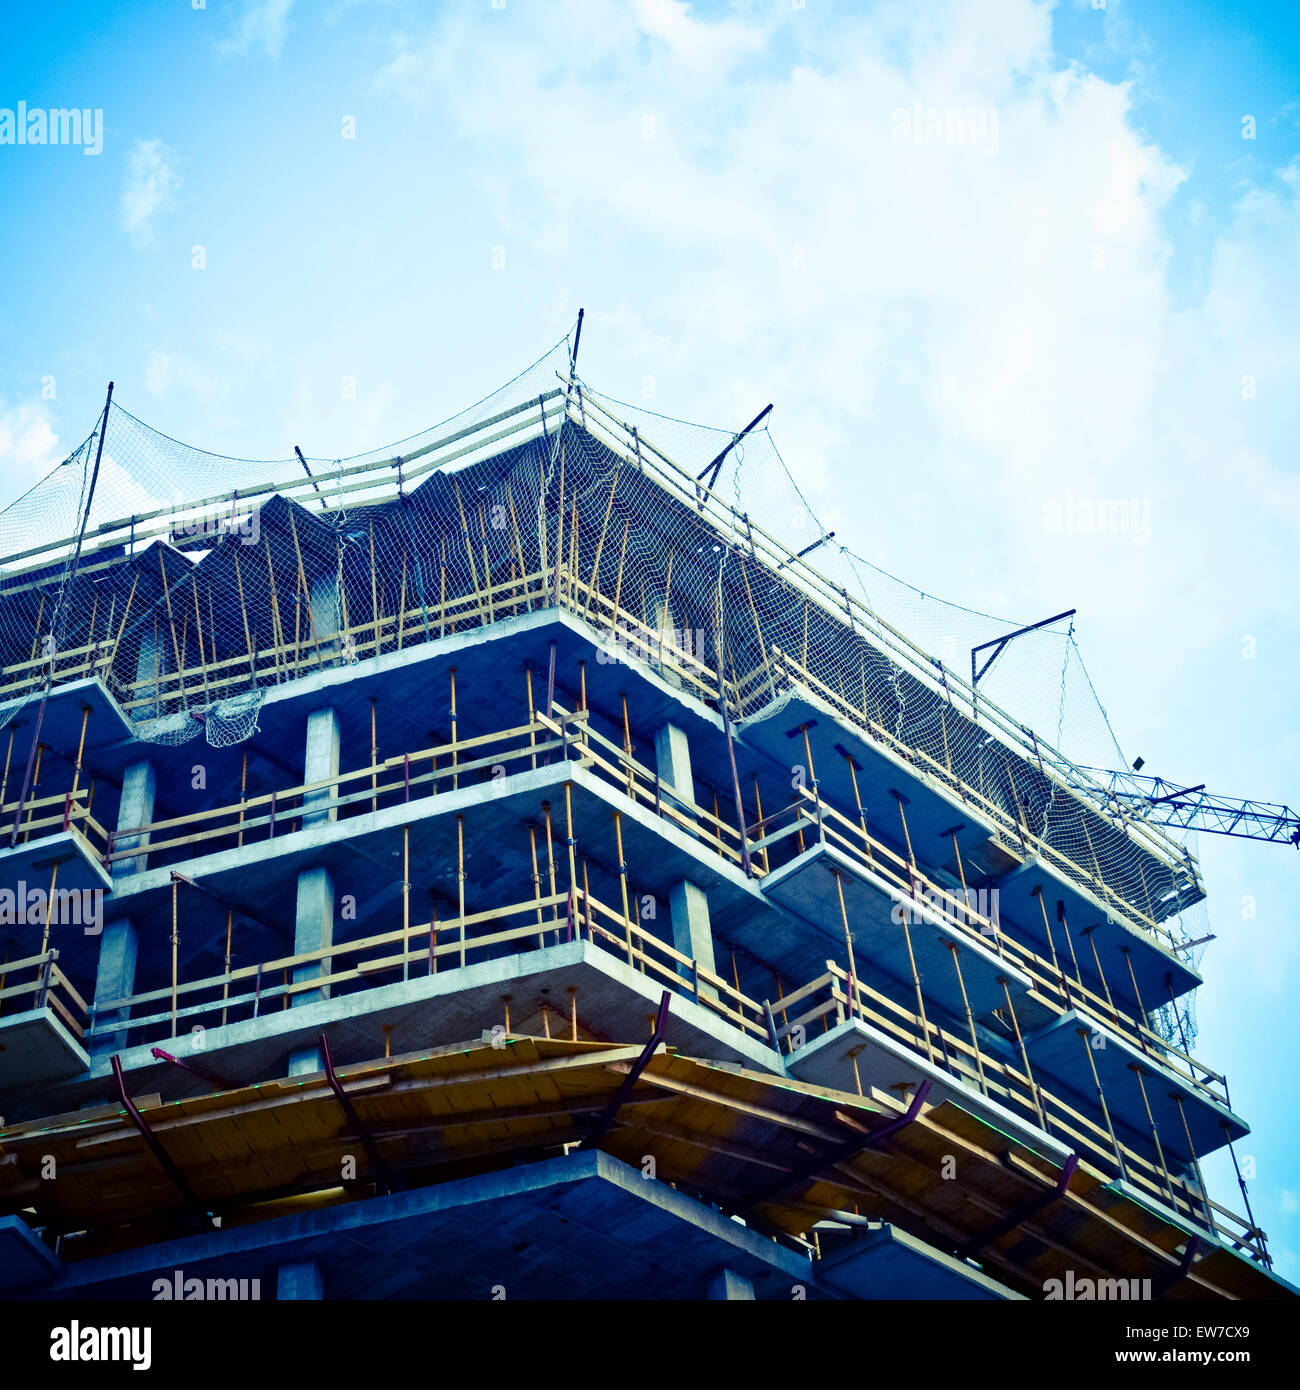 Building under construction. Stock Photo